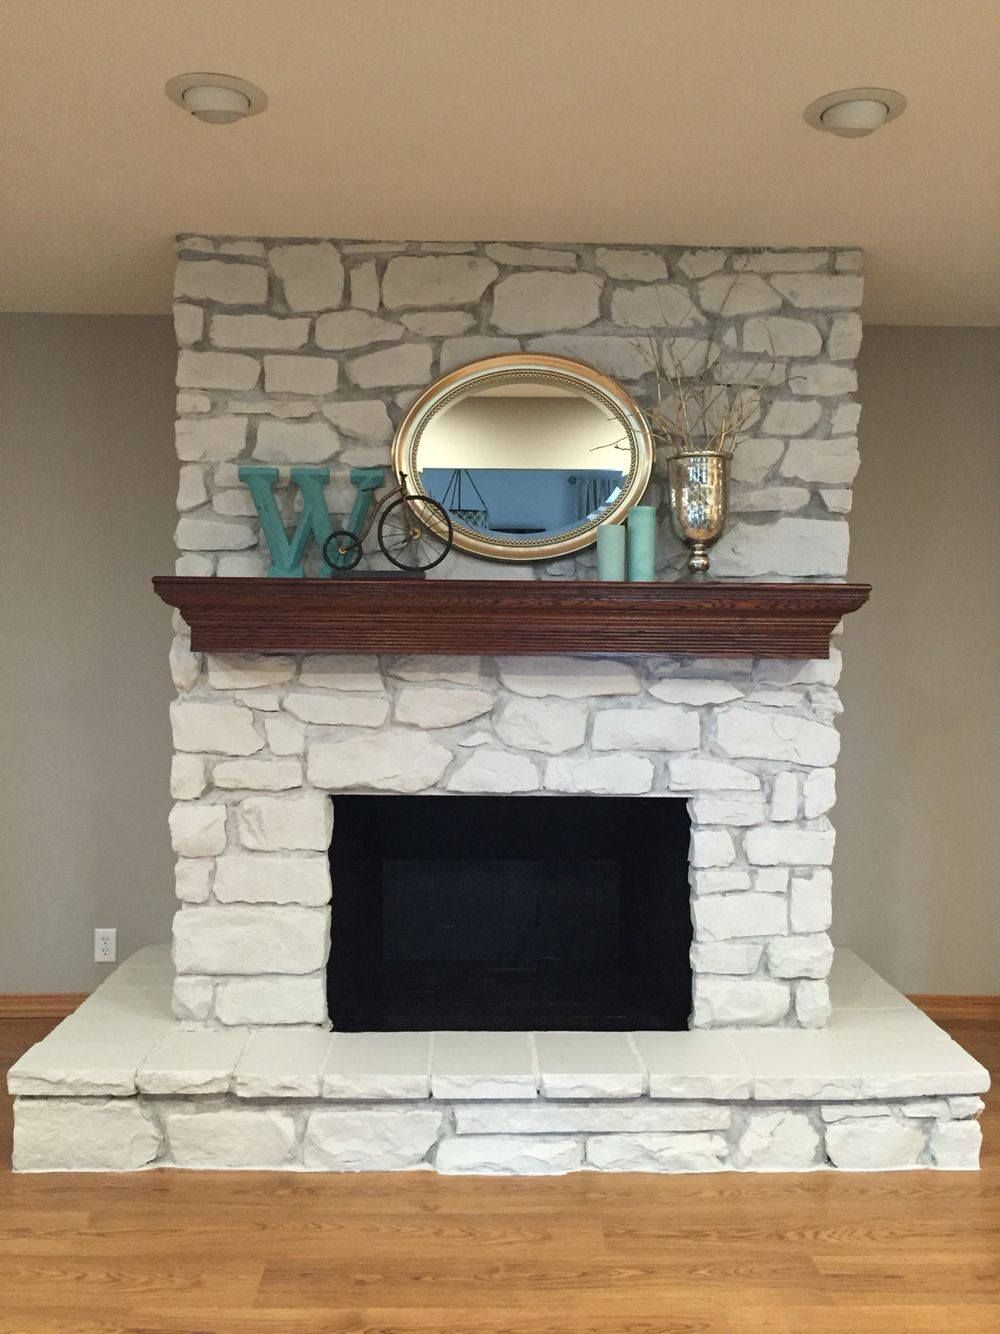 Erin S Art And Gardens Painted Stone Fireplace Before And After Painted Stone Fireplace Stone Fireplace Makeover Fireplace Remodel